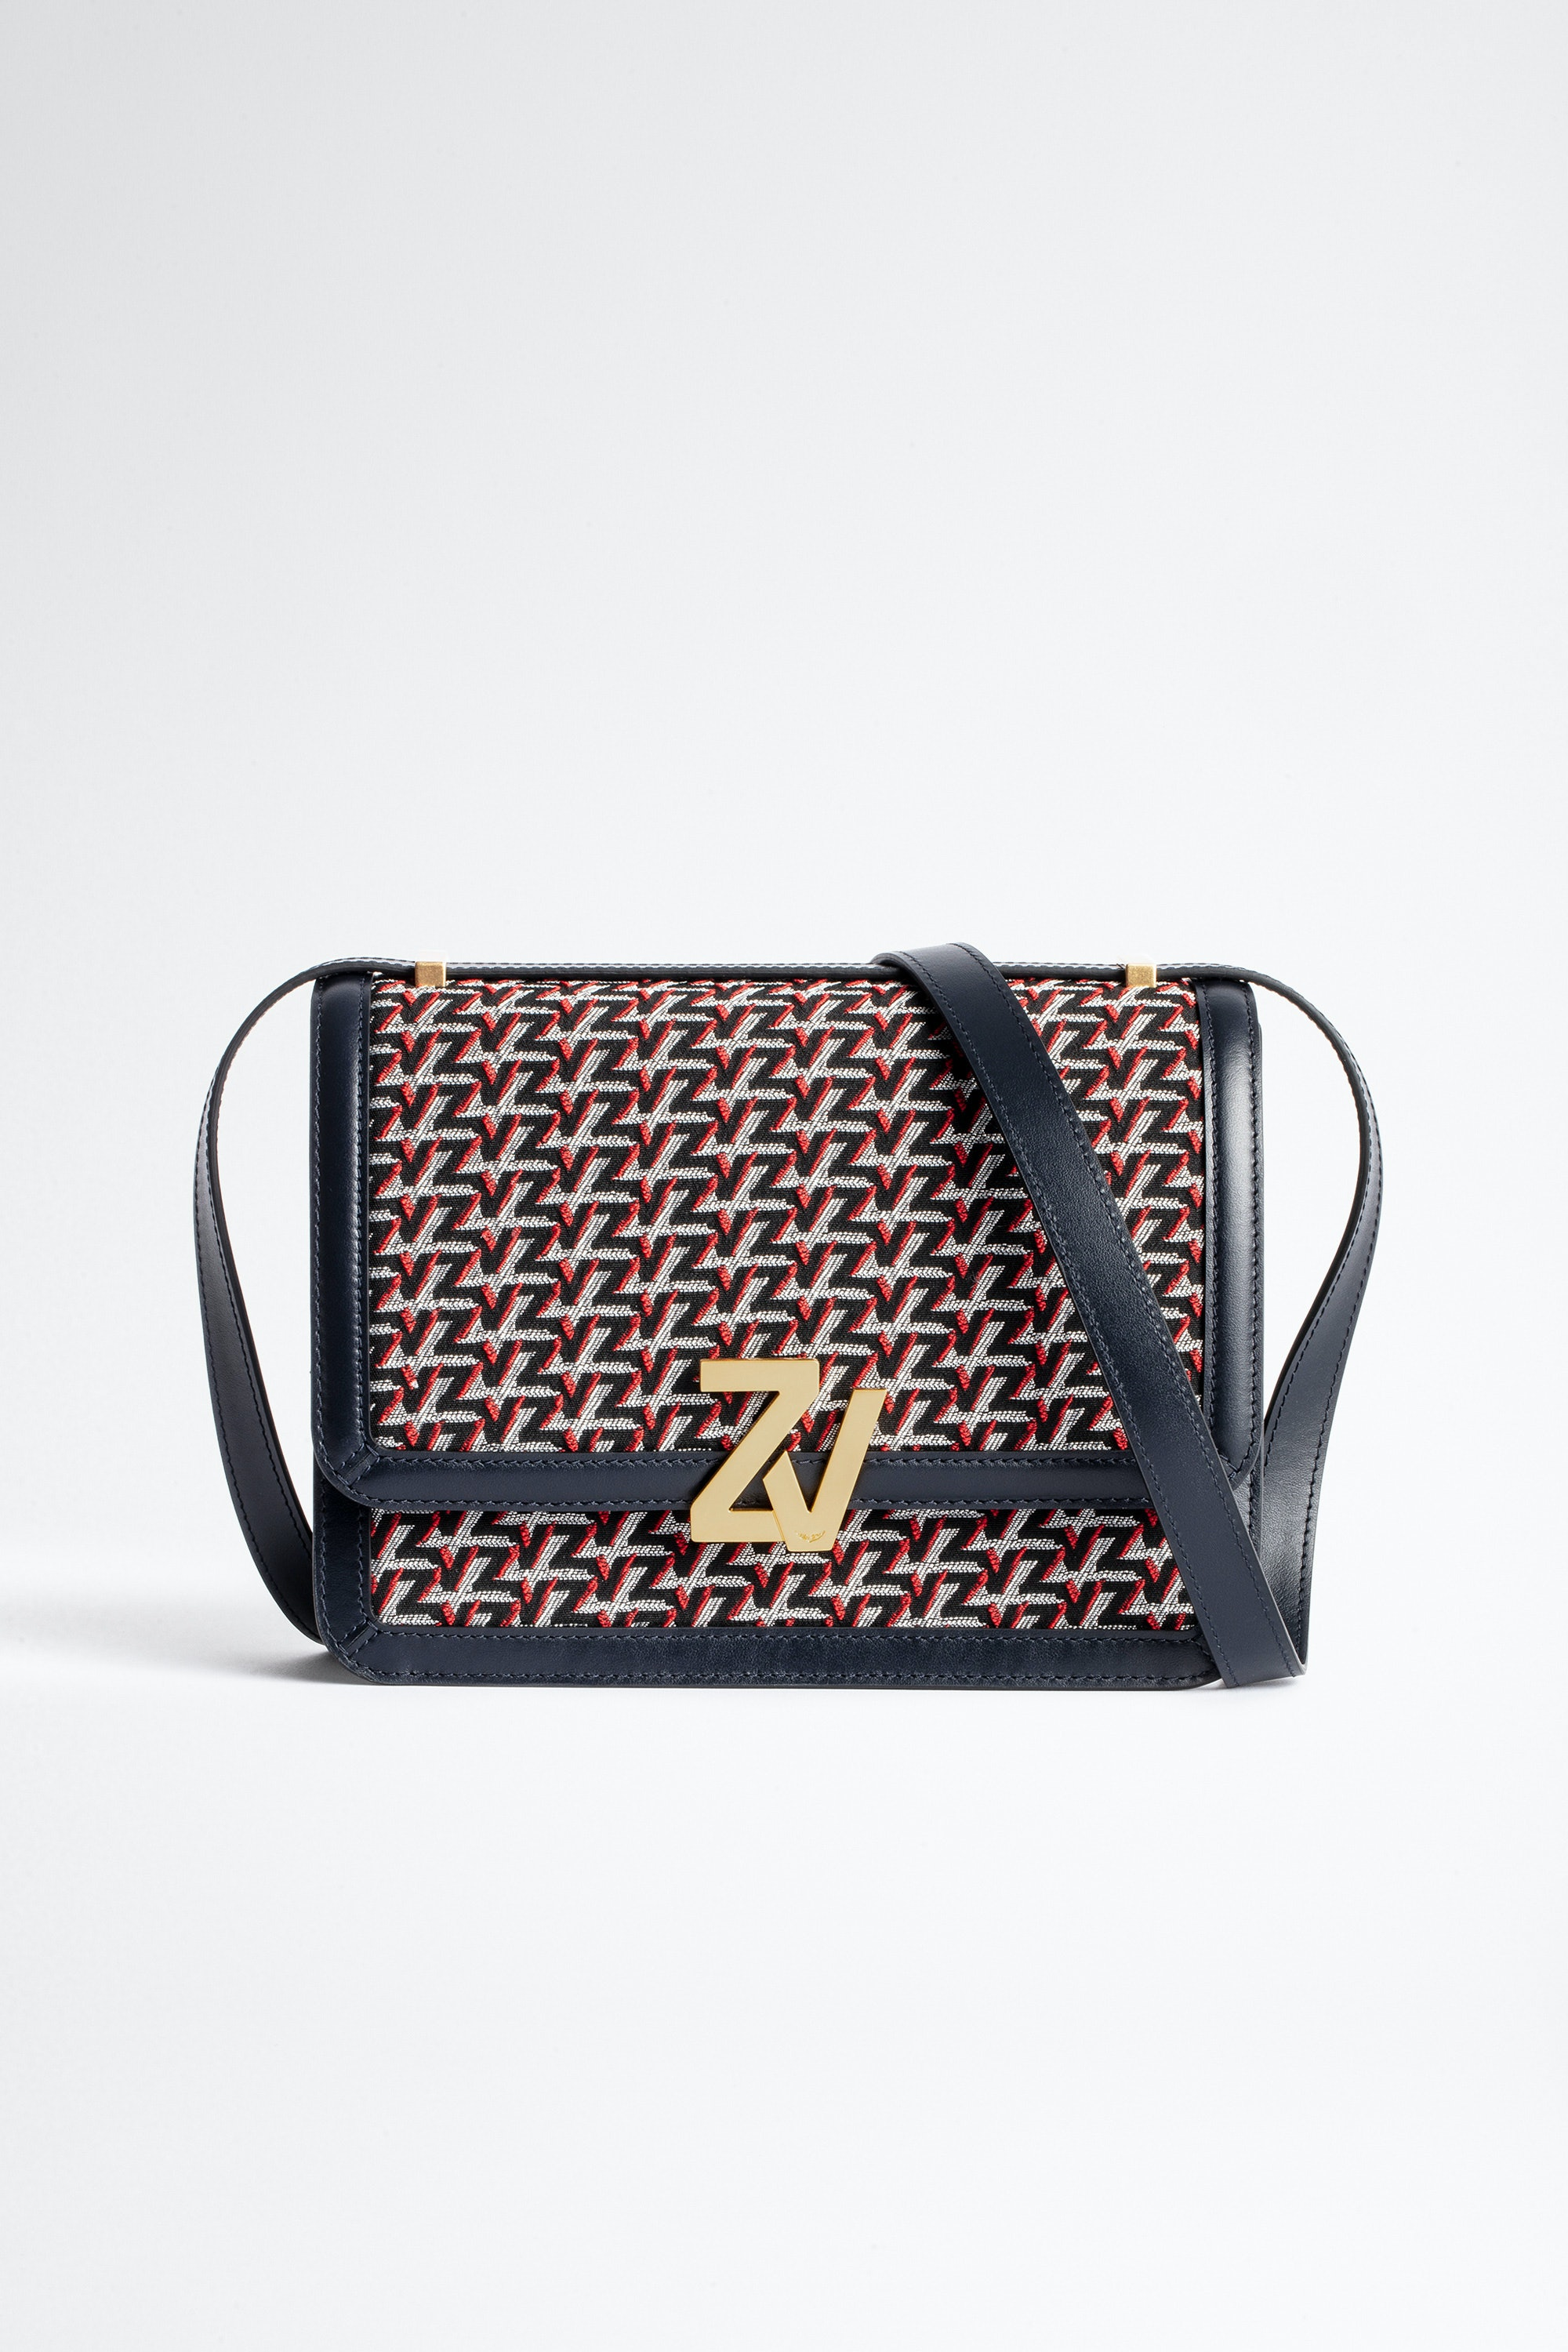 ZV Initiale Le City Monogram Bag